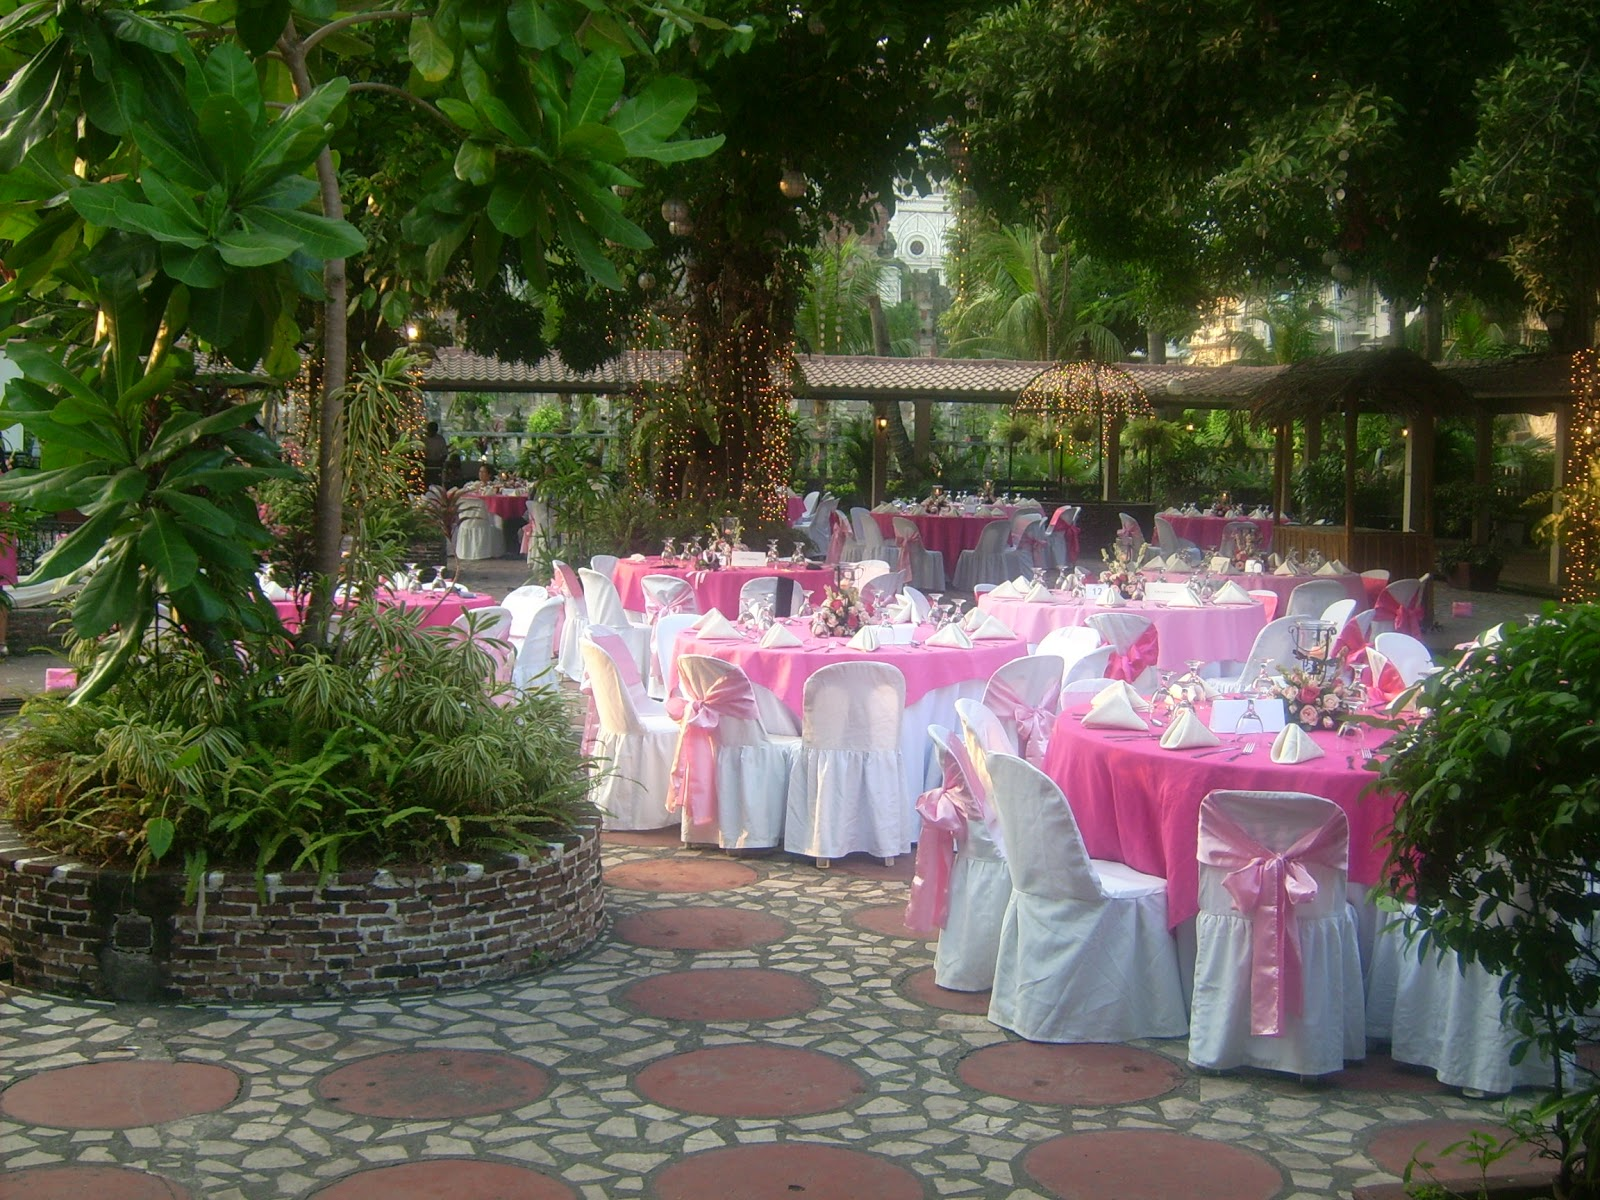 Lq designs ideas for wedding receptions on a budget for Outdoor wedding decorating ideas